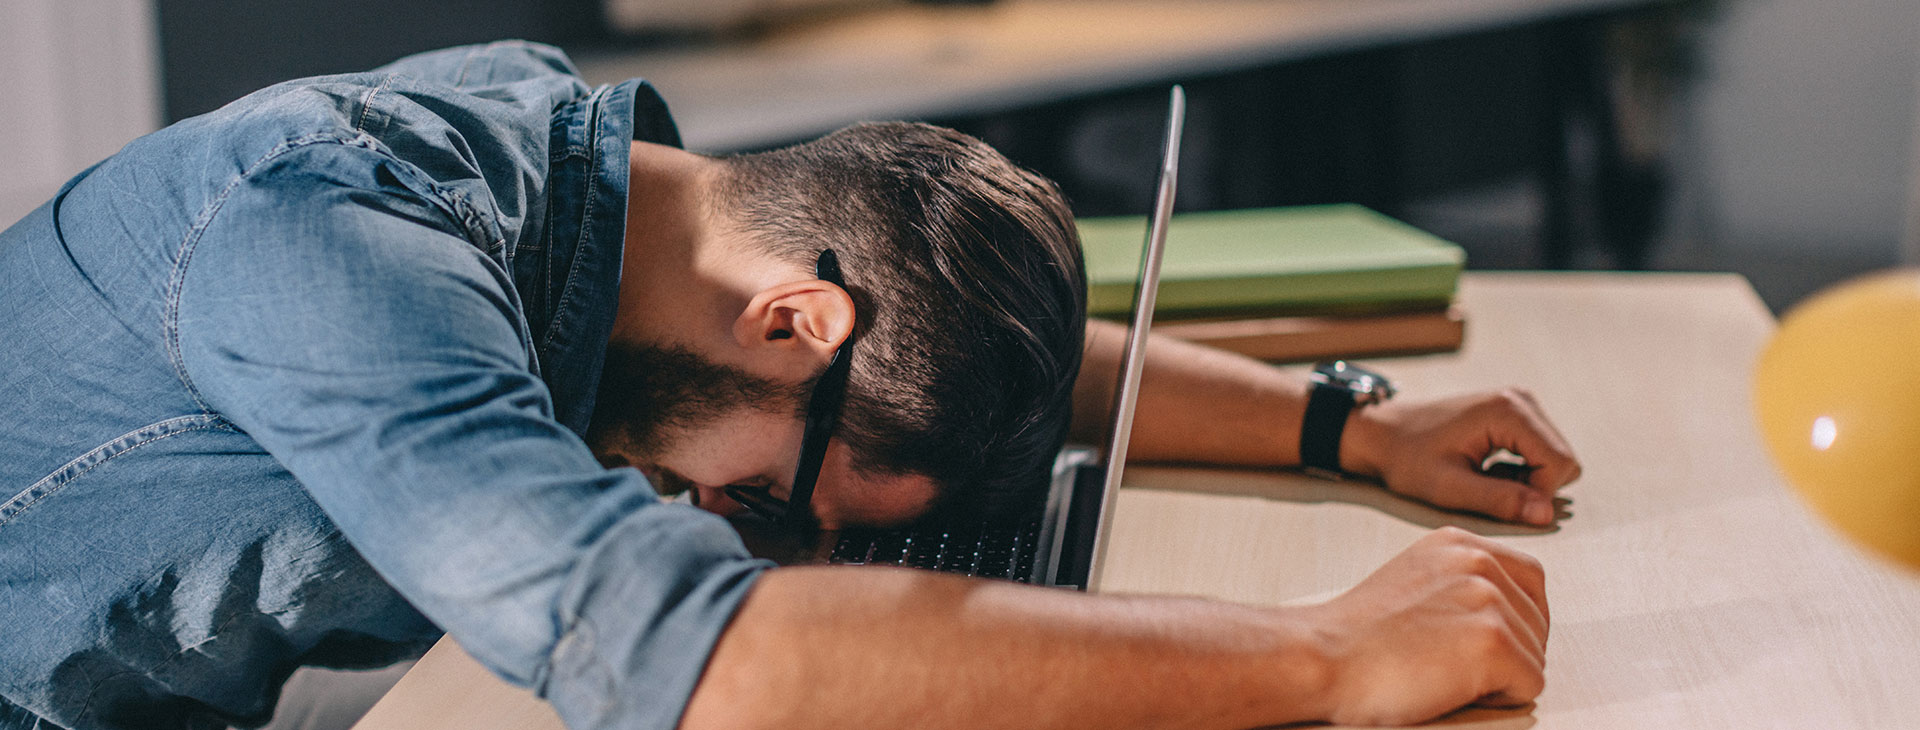 Man slumped over laptop as job sucks